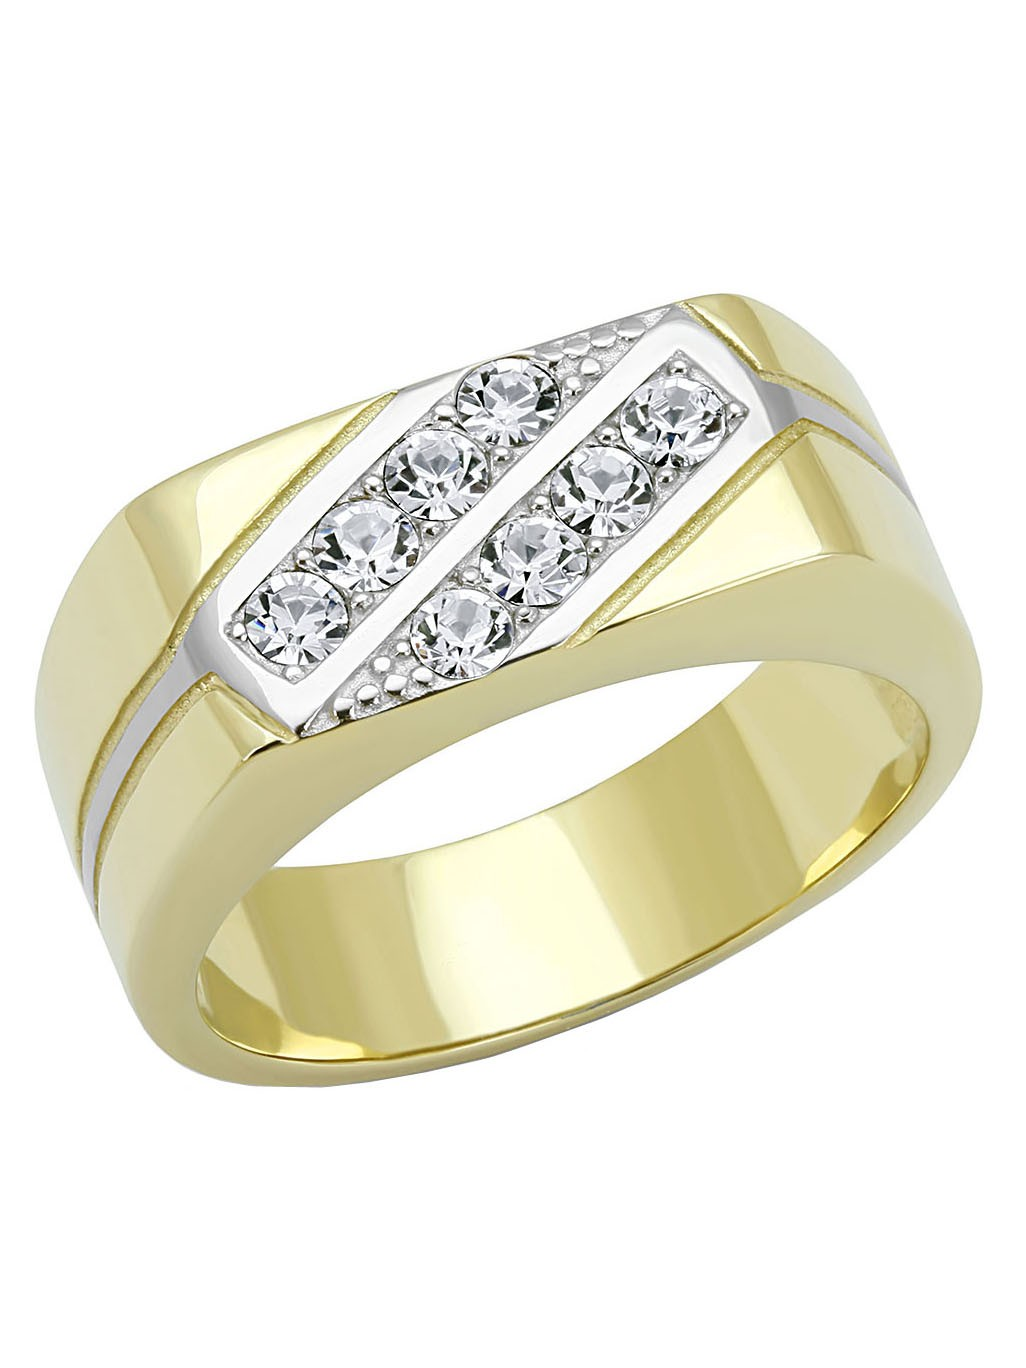 Top Grade Crystal Set in Two-Tone IP Gold Stainless Steel Mens Ring - Size 8